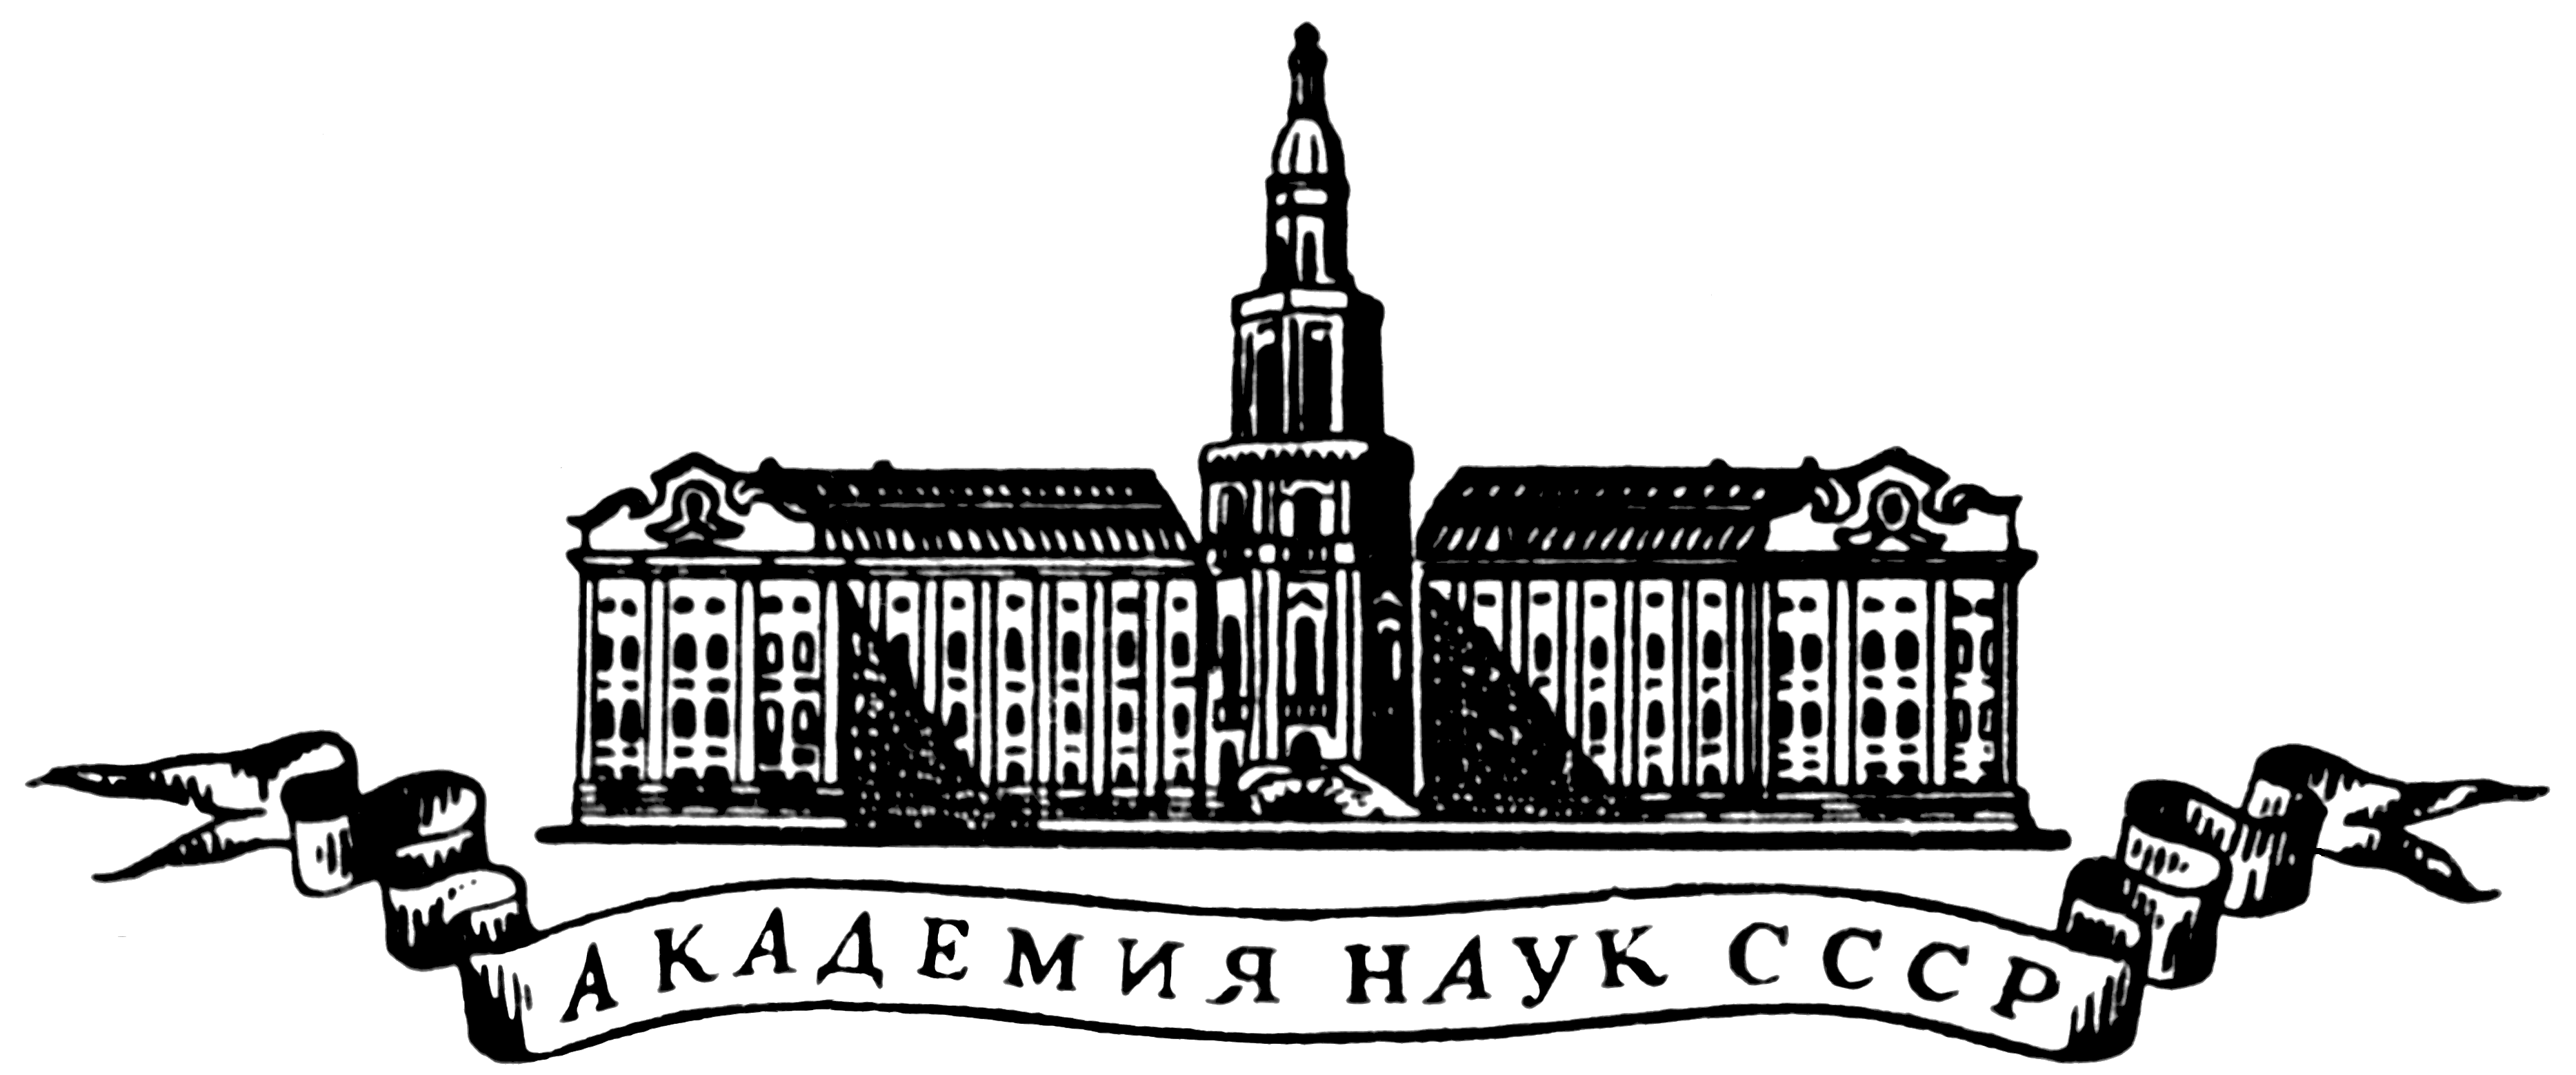 Academy-of-Sciences-USSR-logo.png